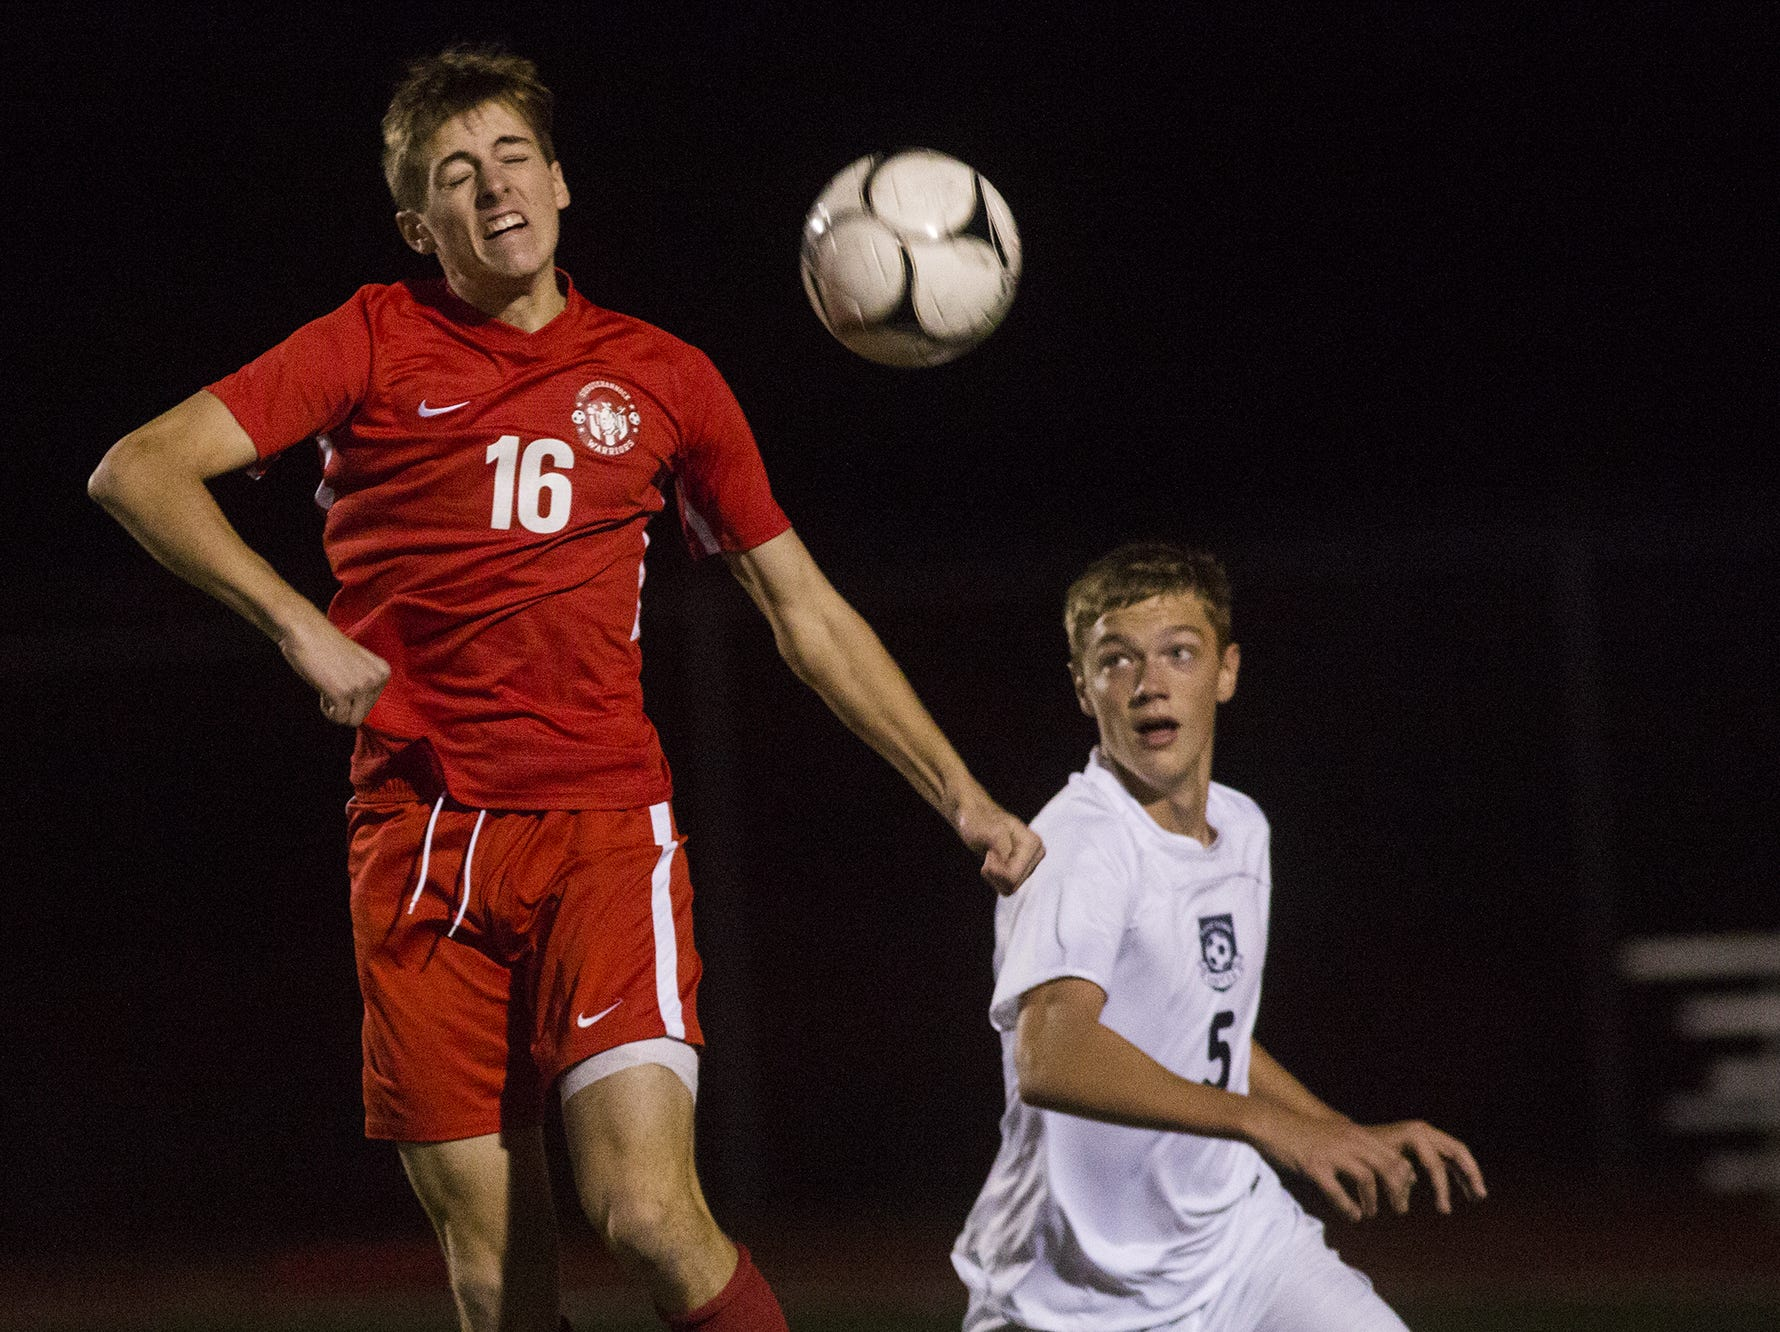 Susquehannock's Mason Kaifer, left, and West York's Jason Bruder compete for the ball. Susquehannock plays West York in the YAIAA boys' soccer championship game at Northeastern High School in Manchester, Saturday, October 20, 2018.